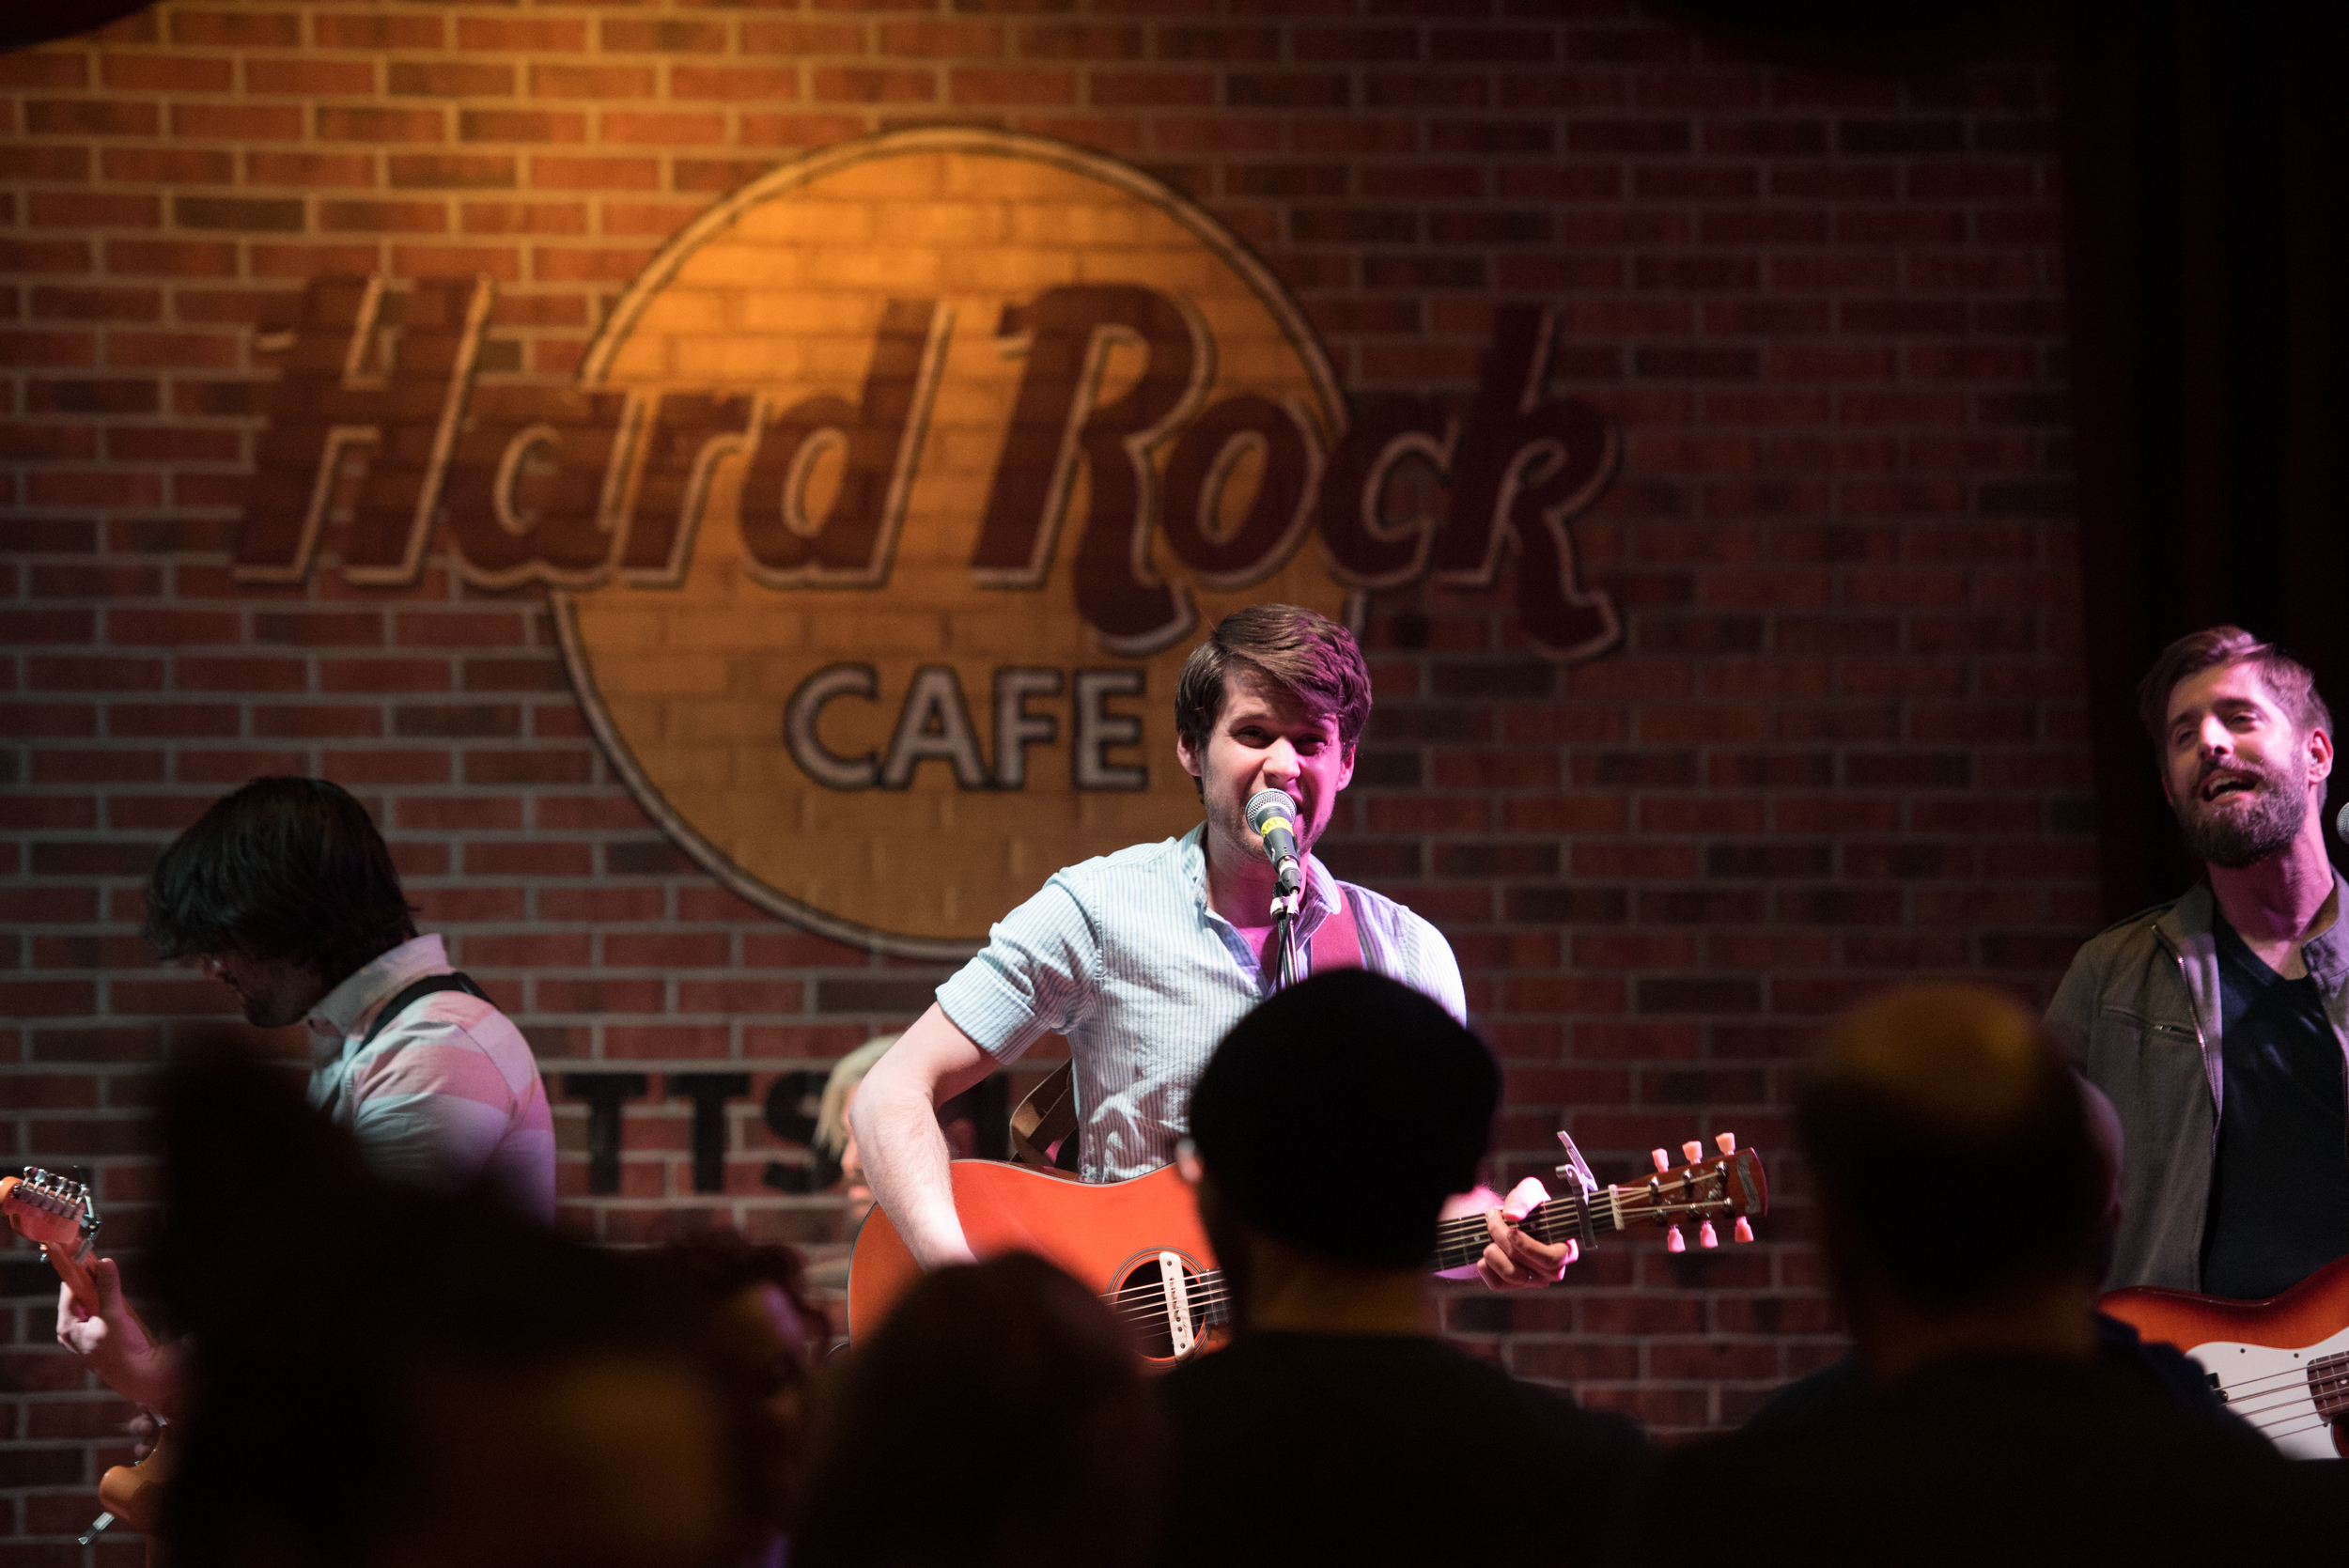 Cure Rock - Hard Rock Cafe - 3.26.15 - 231.jpg